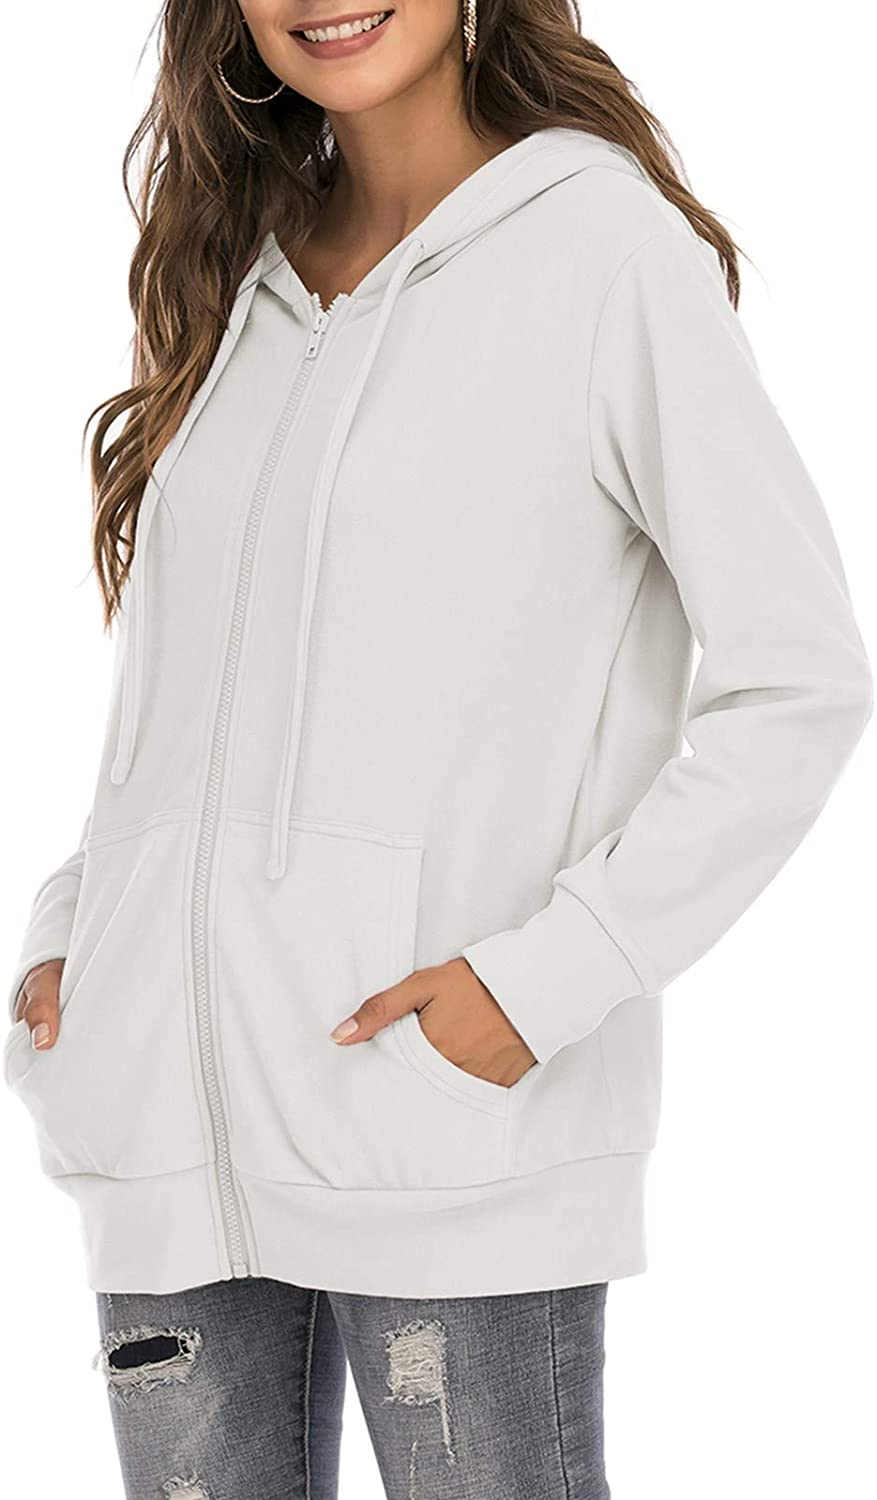 GOCHIC Womens Zip Up Long Sleeves Hoodie Casual Solid Color Sweatshirt with Pockets